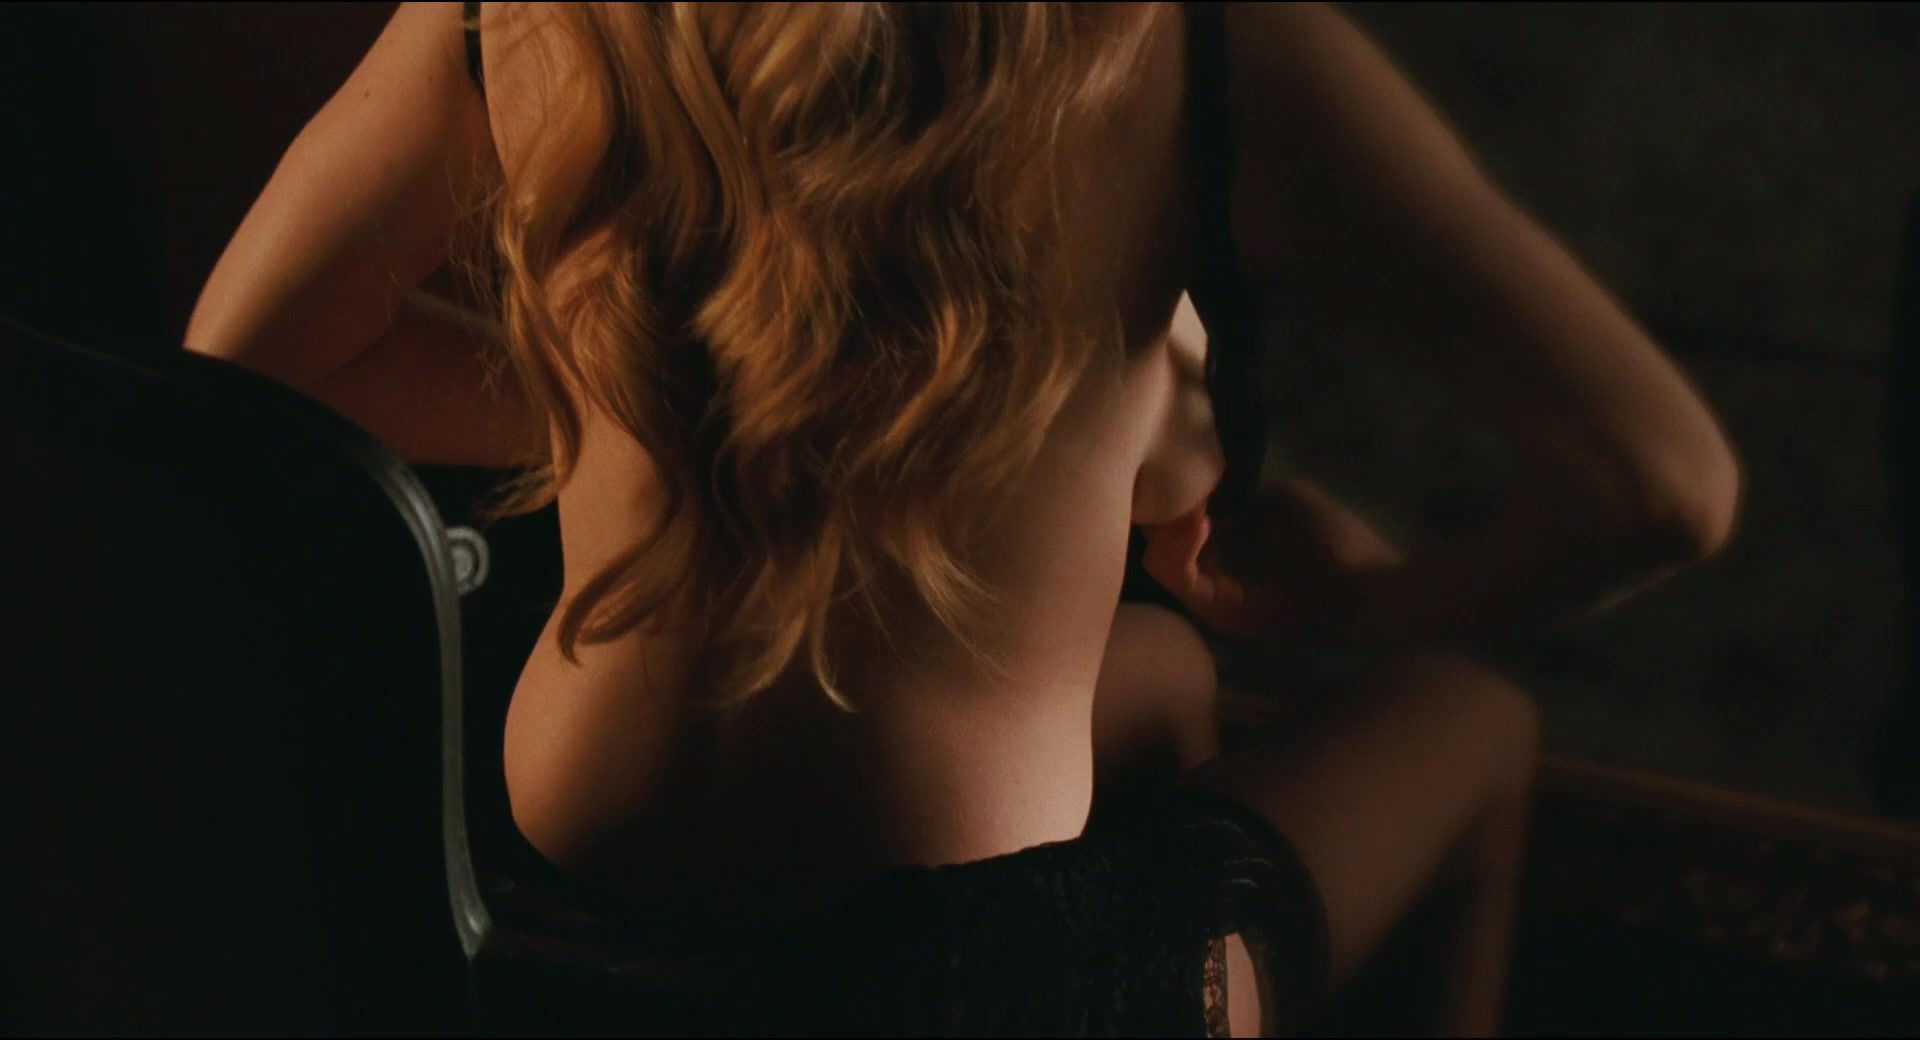 Amanda Seyfried Sex Pics amanda seyfried & julianne moore - chloe (2009) video » best